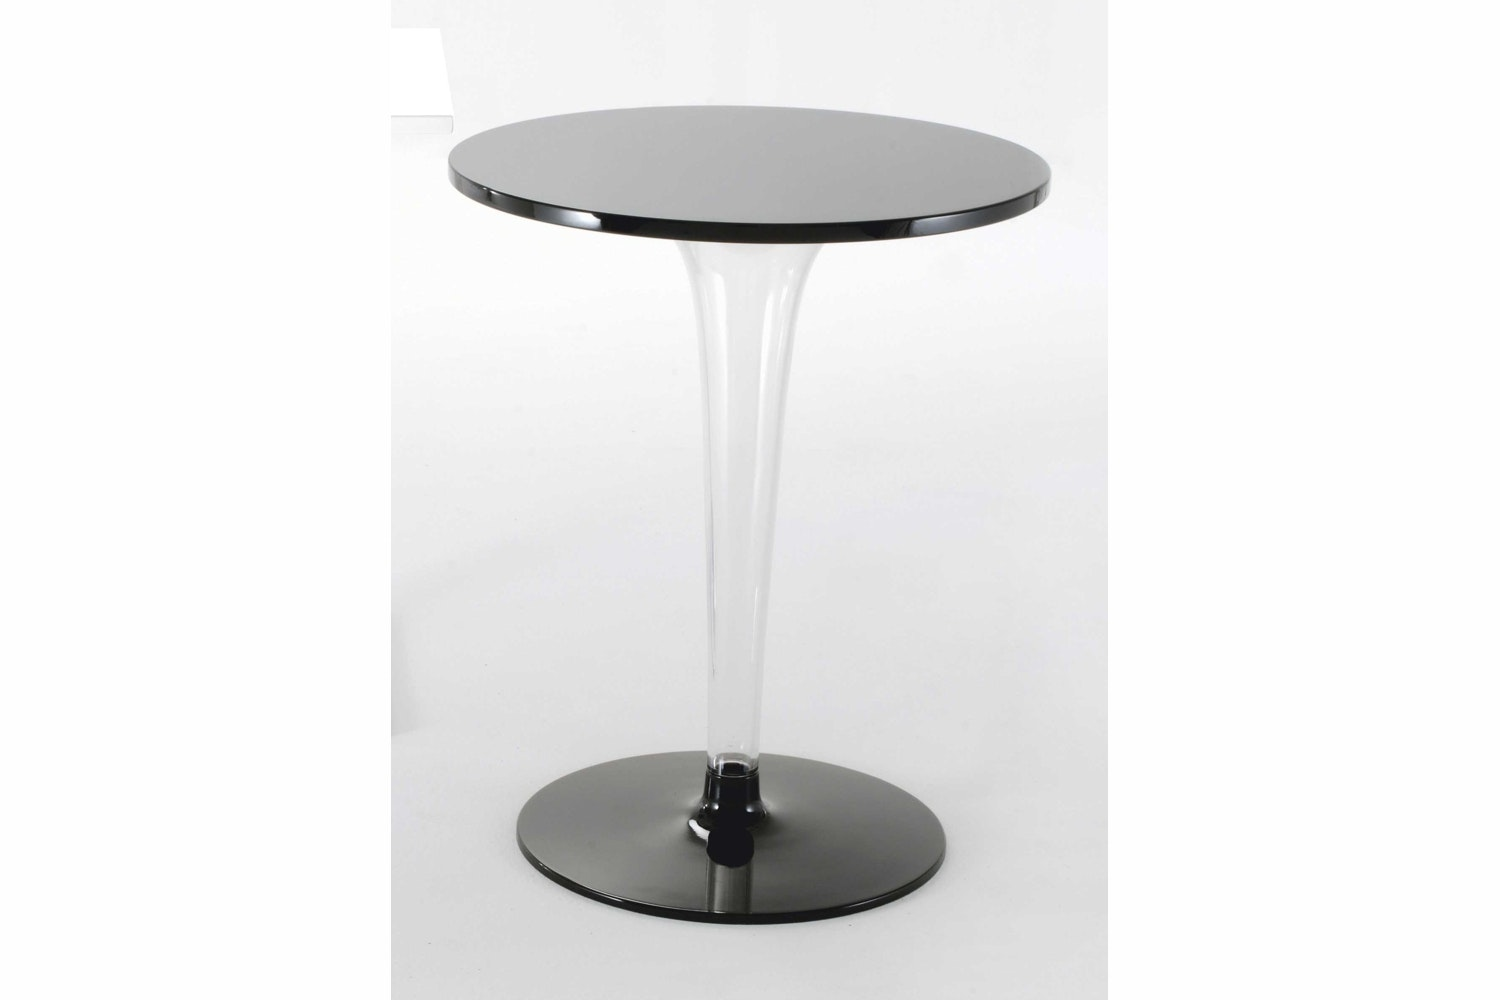 TopTop for Dr. YES Table with Round Leg by Philippe Starck with Eugeni Quitllet for Kartell